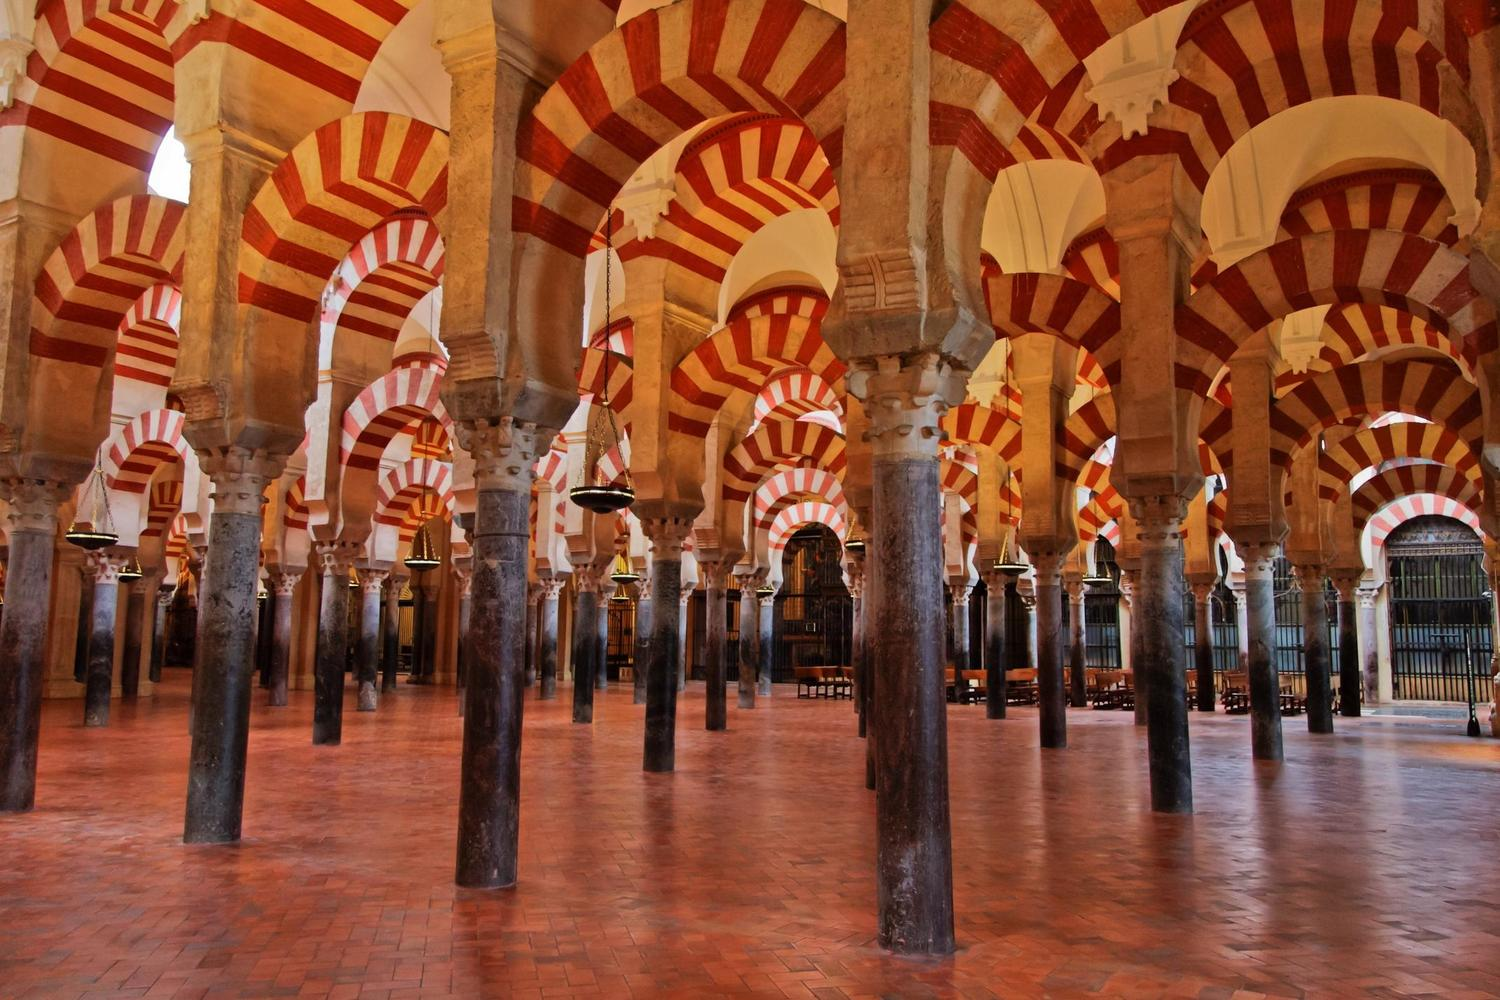 The sea of arches inside Cordoba's great mosque